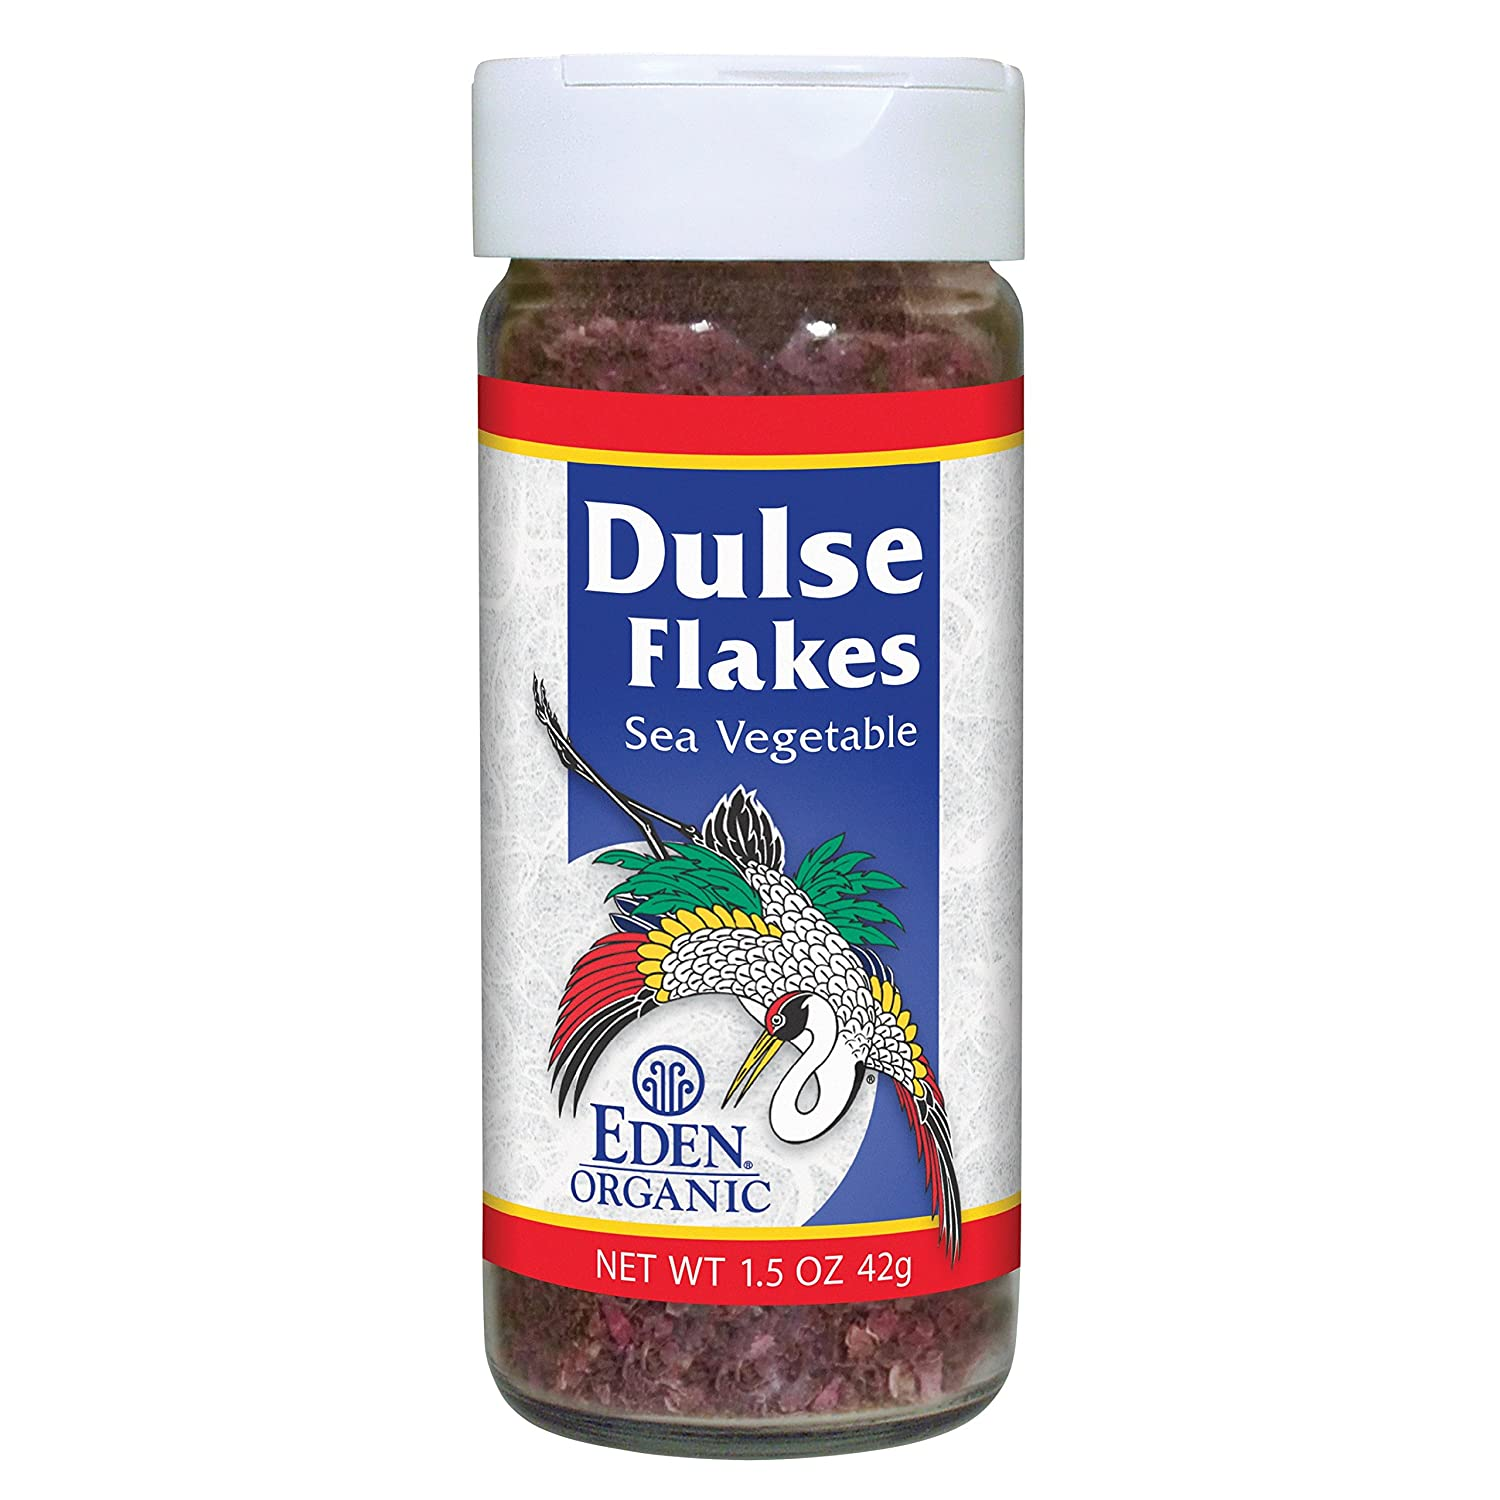 Eden Organic Dulse Flakes, 1.5-Ounce Jars (Pack of 12)